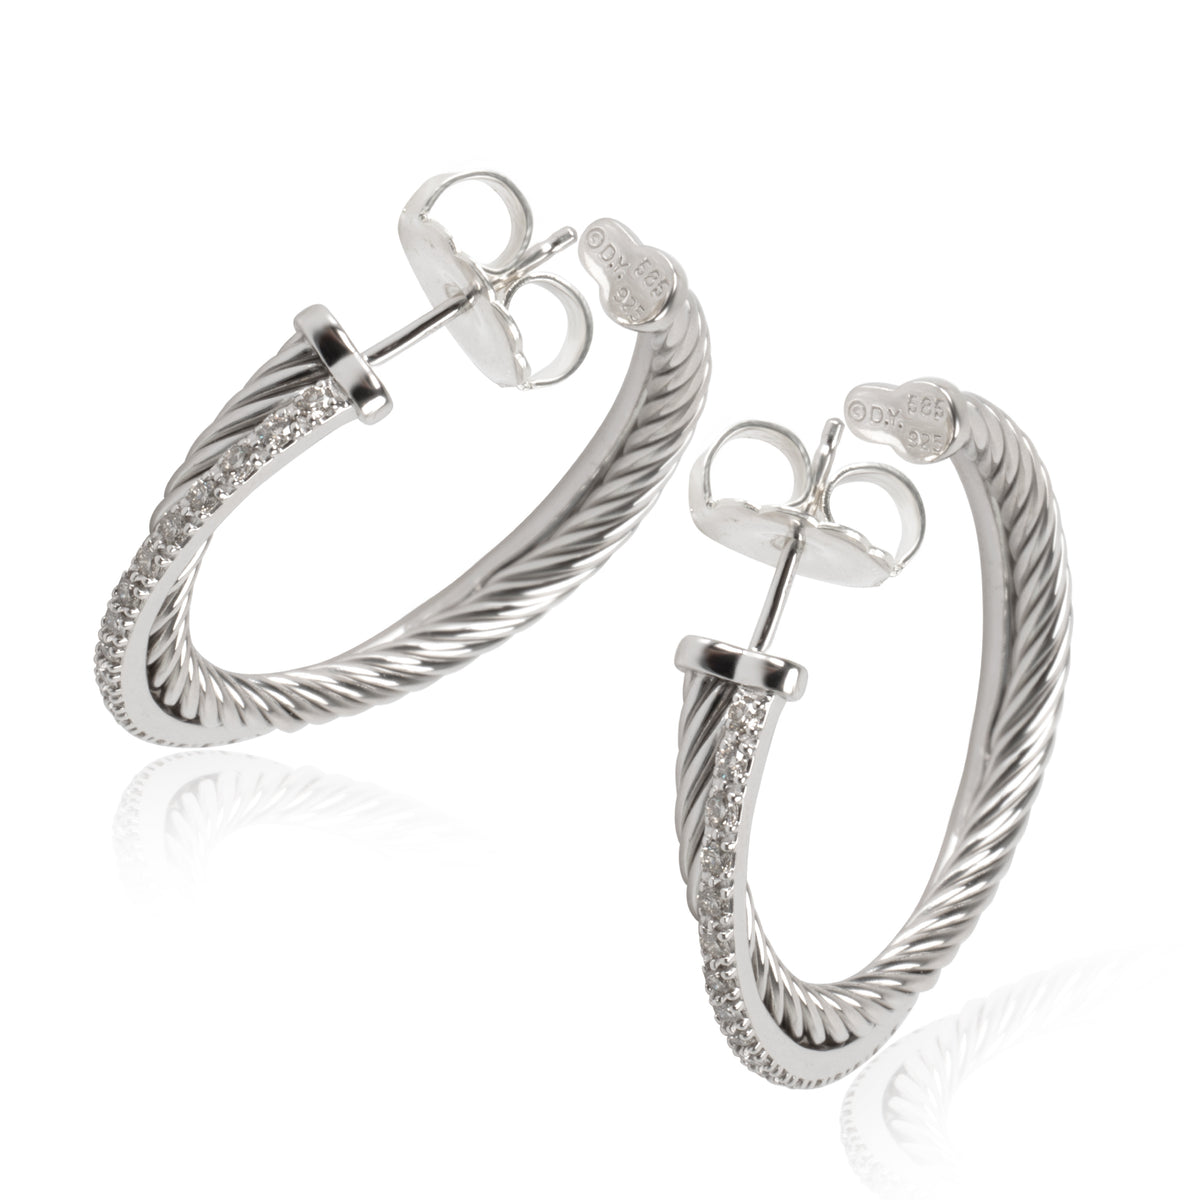 David Yurman Crossover Diamond Hoop Earrings 14K Gold & Sterling Silver 0.40 CTW